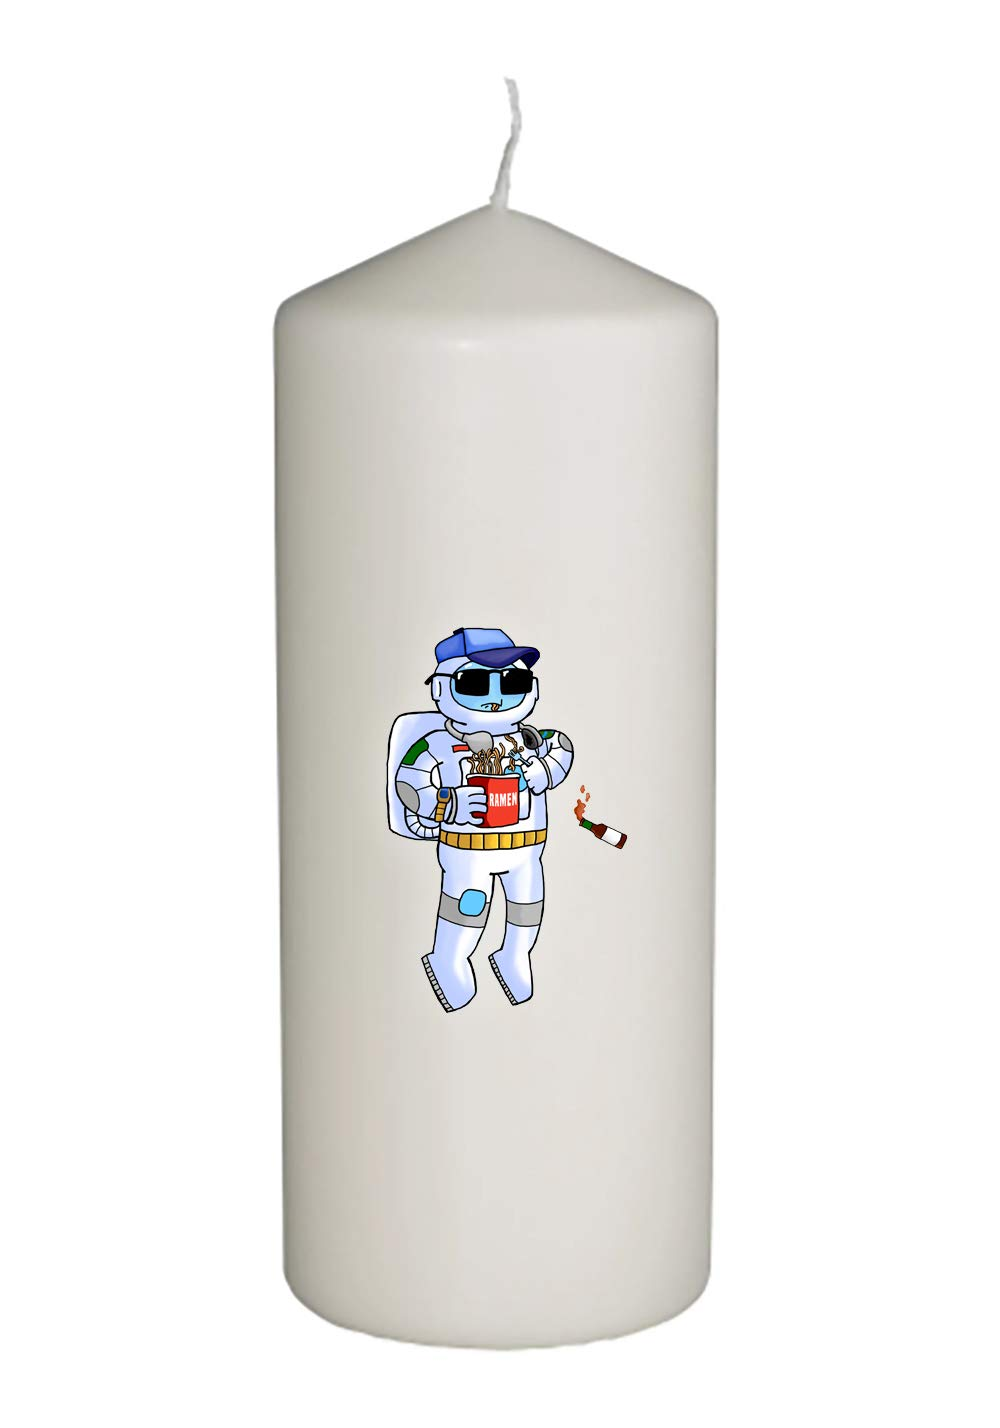 Cool Floating Astronaut Eating Ramen with Hot Sauce Thick White in Full Color Unity Candle - Wedding, Baptism, Funeral, Special Event Decoration (6 inches Tall)